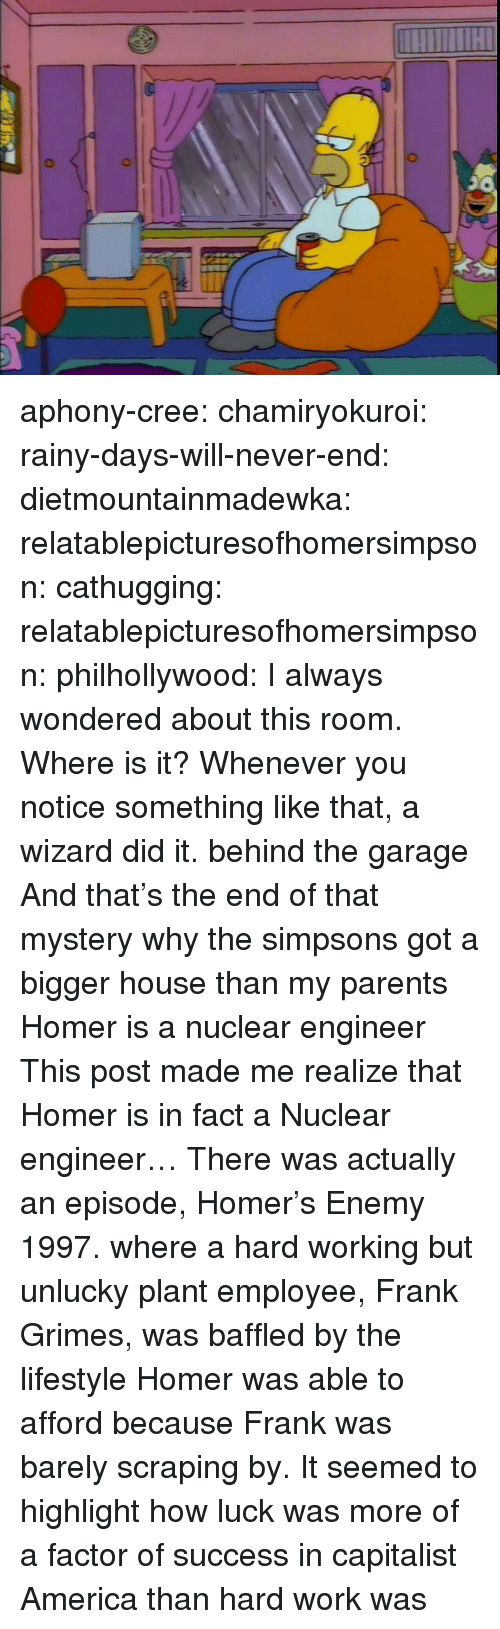 unlucky: aphony-cree:  chamiryokuroi: rainy-days-will-never-end:  dietmountainmadewka:   relatablepicturesofhomersimpson:  cathugging:  relatablepicturesofhomersimpson:   philhollywood:  I always wondered about this room. Where is it?  Whenever you notice something like that, a wizard did it.    behind the garage  And that's the end of that mystery   why the simpsons got a bigger house than my parents   Homer is a nuclear engineer   This post made me realize that Homer is in fact a Nuclear engineer…  There was actually an episode, Homer's Enemy 1997. where a hard working but unlucky plant employee, Frank Grimes, was baffled by the lifestyle Homer was able to afford because Frank was barely scraping by. It seemed to highlight how luck was more of a factor of success in capitalist America than hard work was